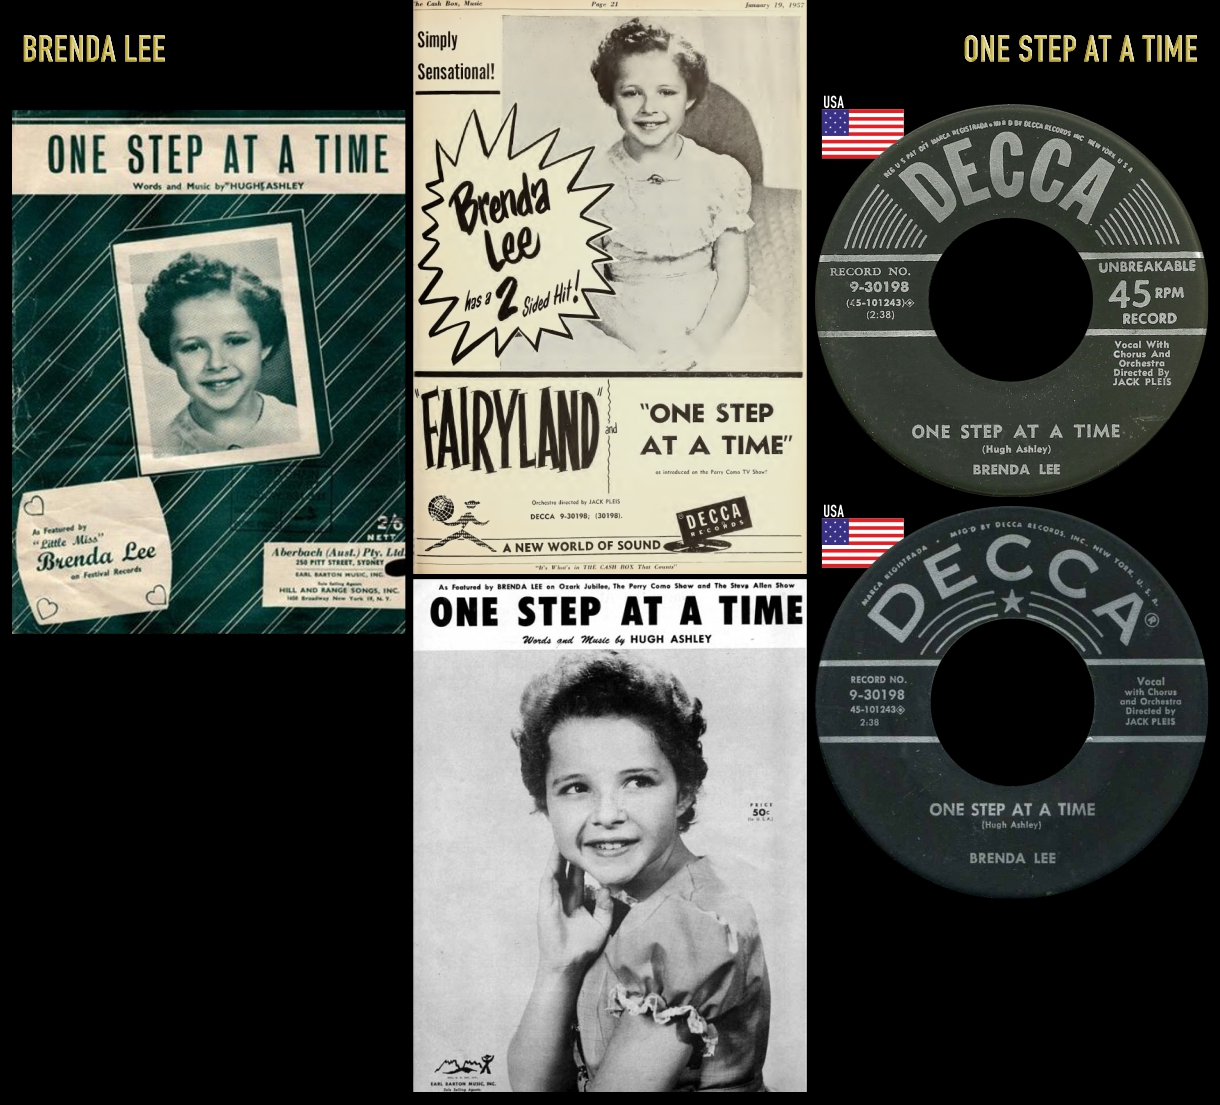 570302_Brenda Lee_One Step At A Timr